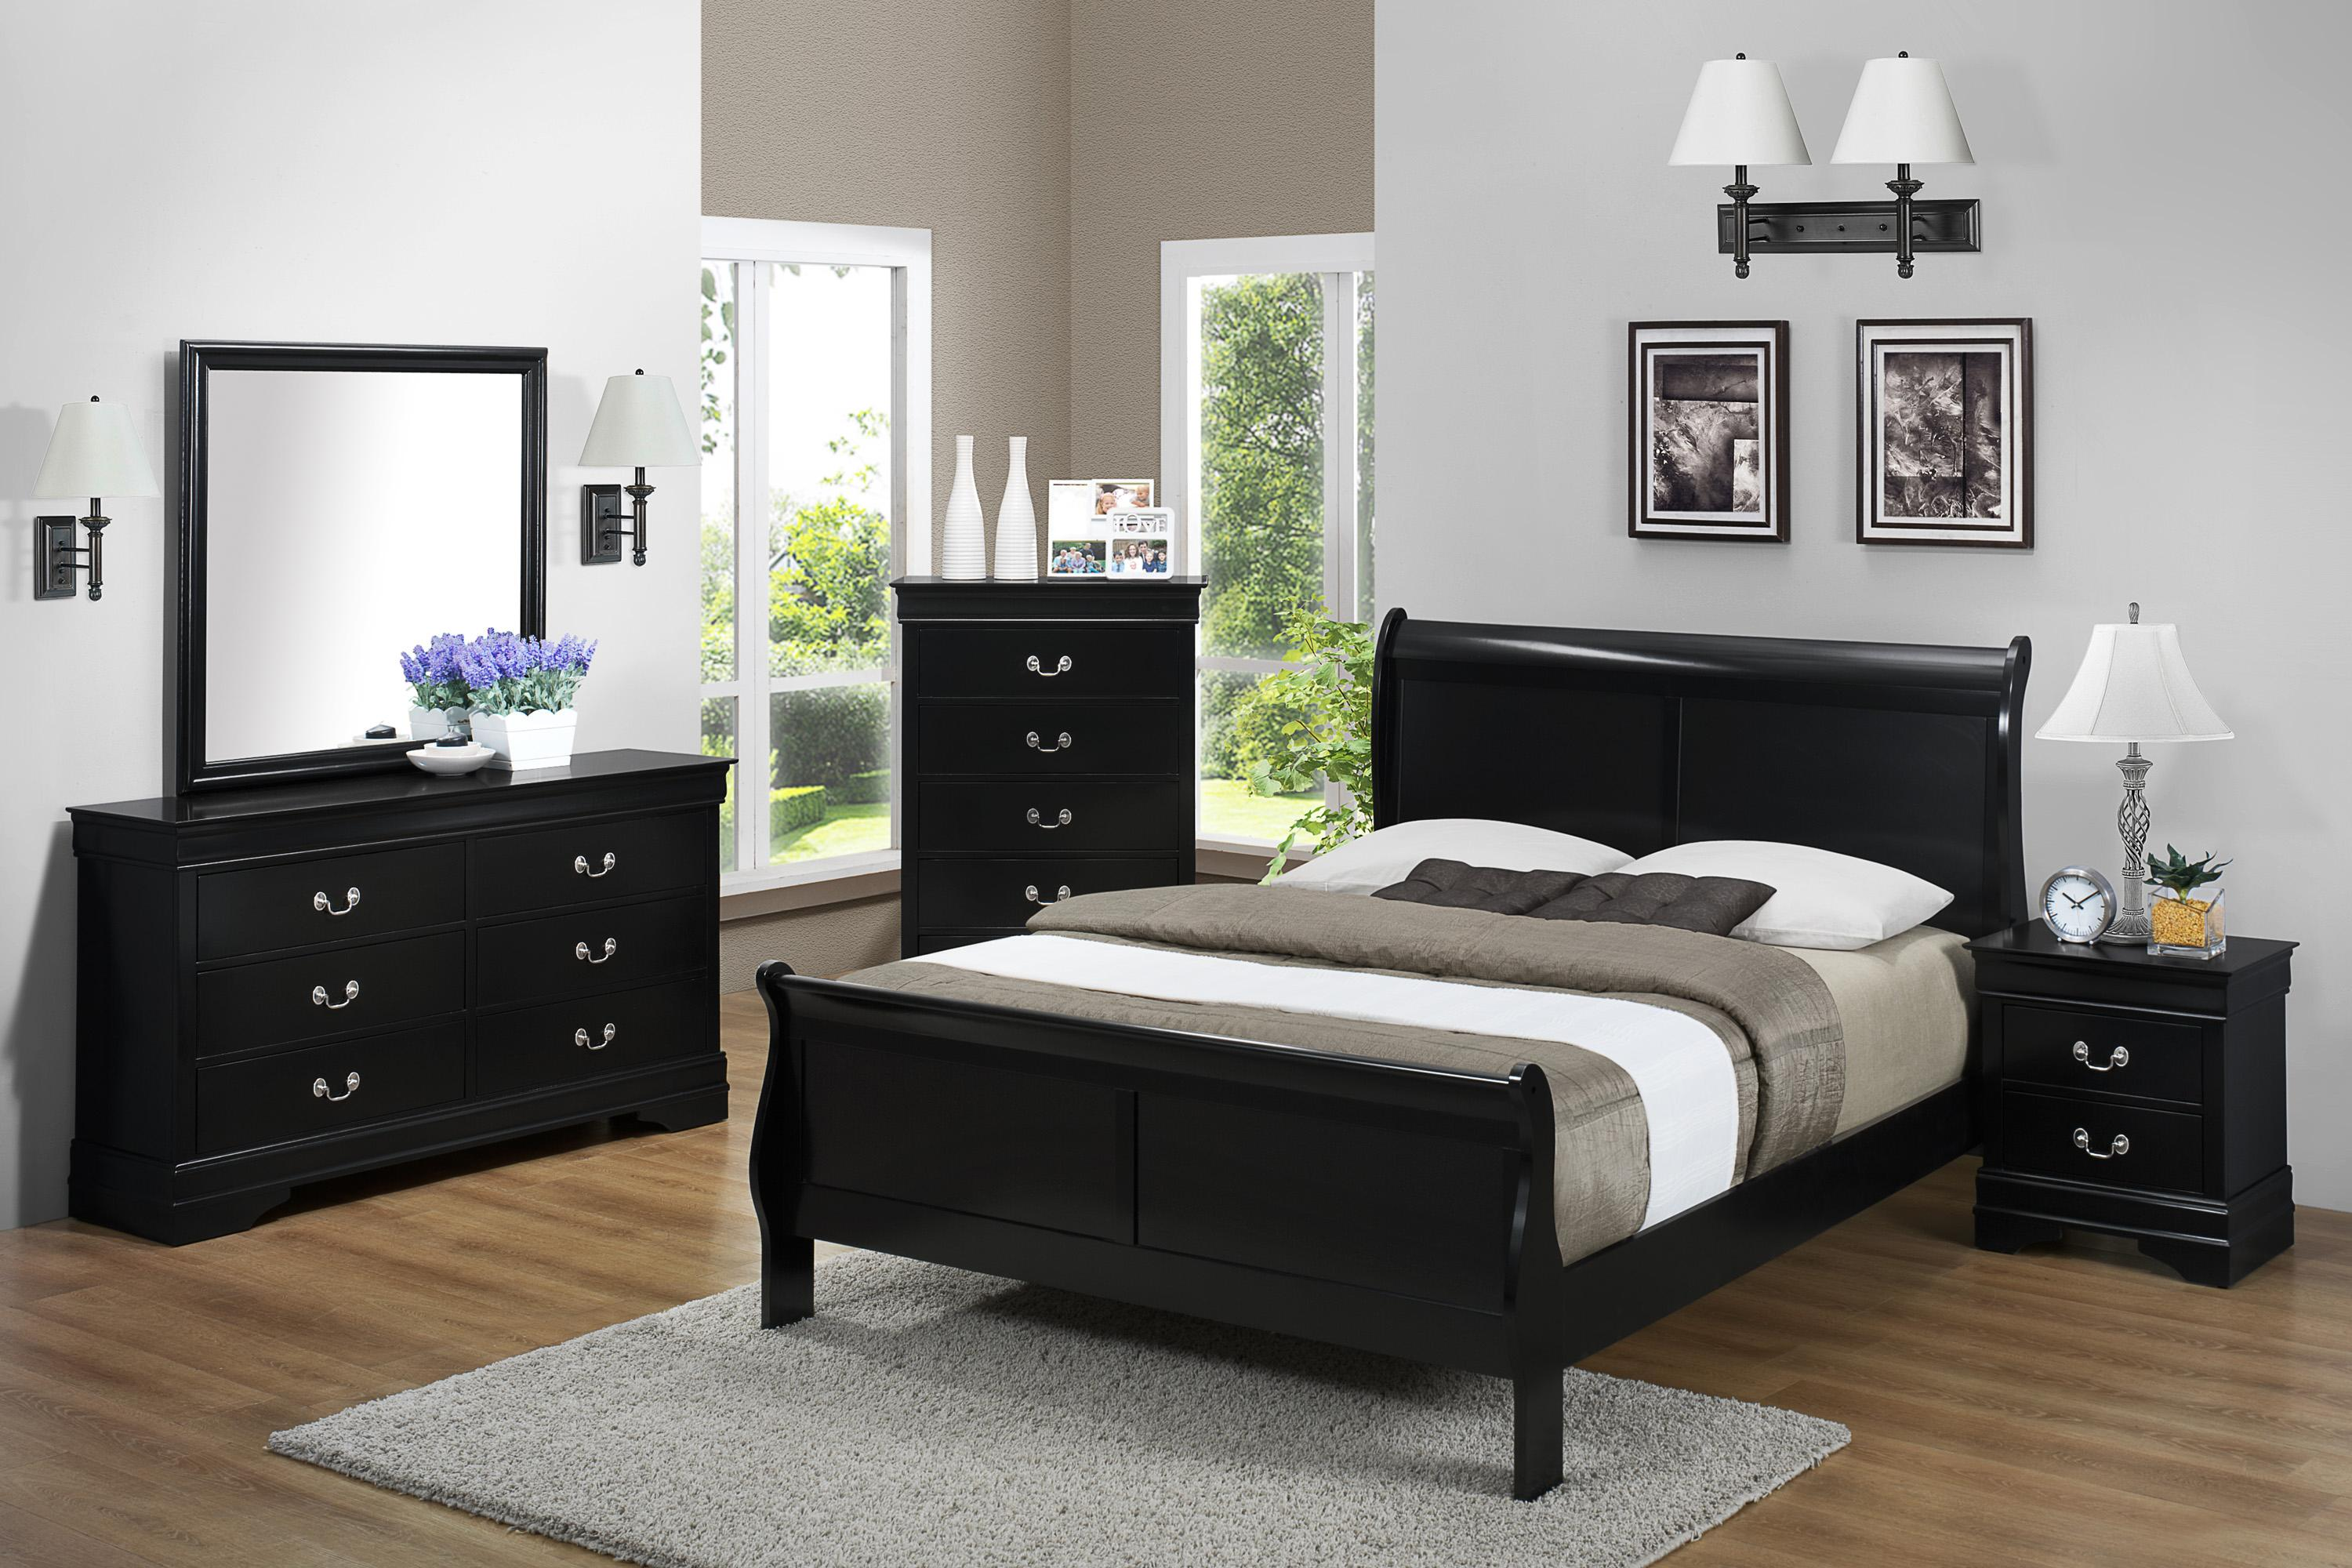 Crown Mark Louis Phillipe Twin Bedroom Group - Item Number: B3900 T Bedroom Group 1